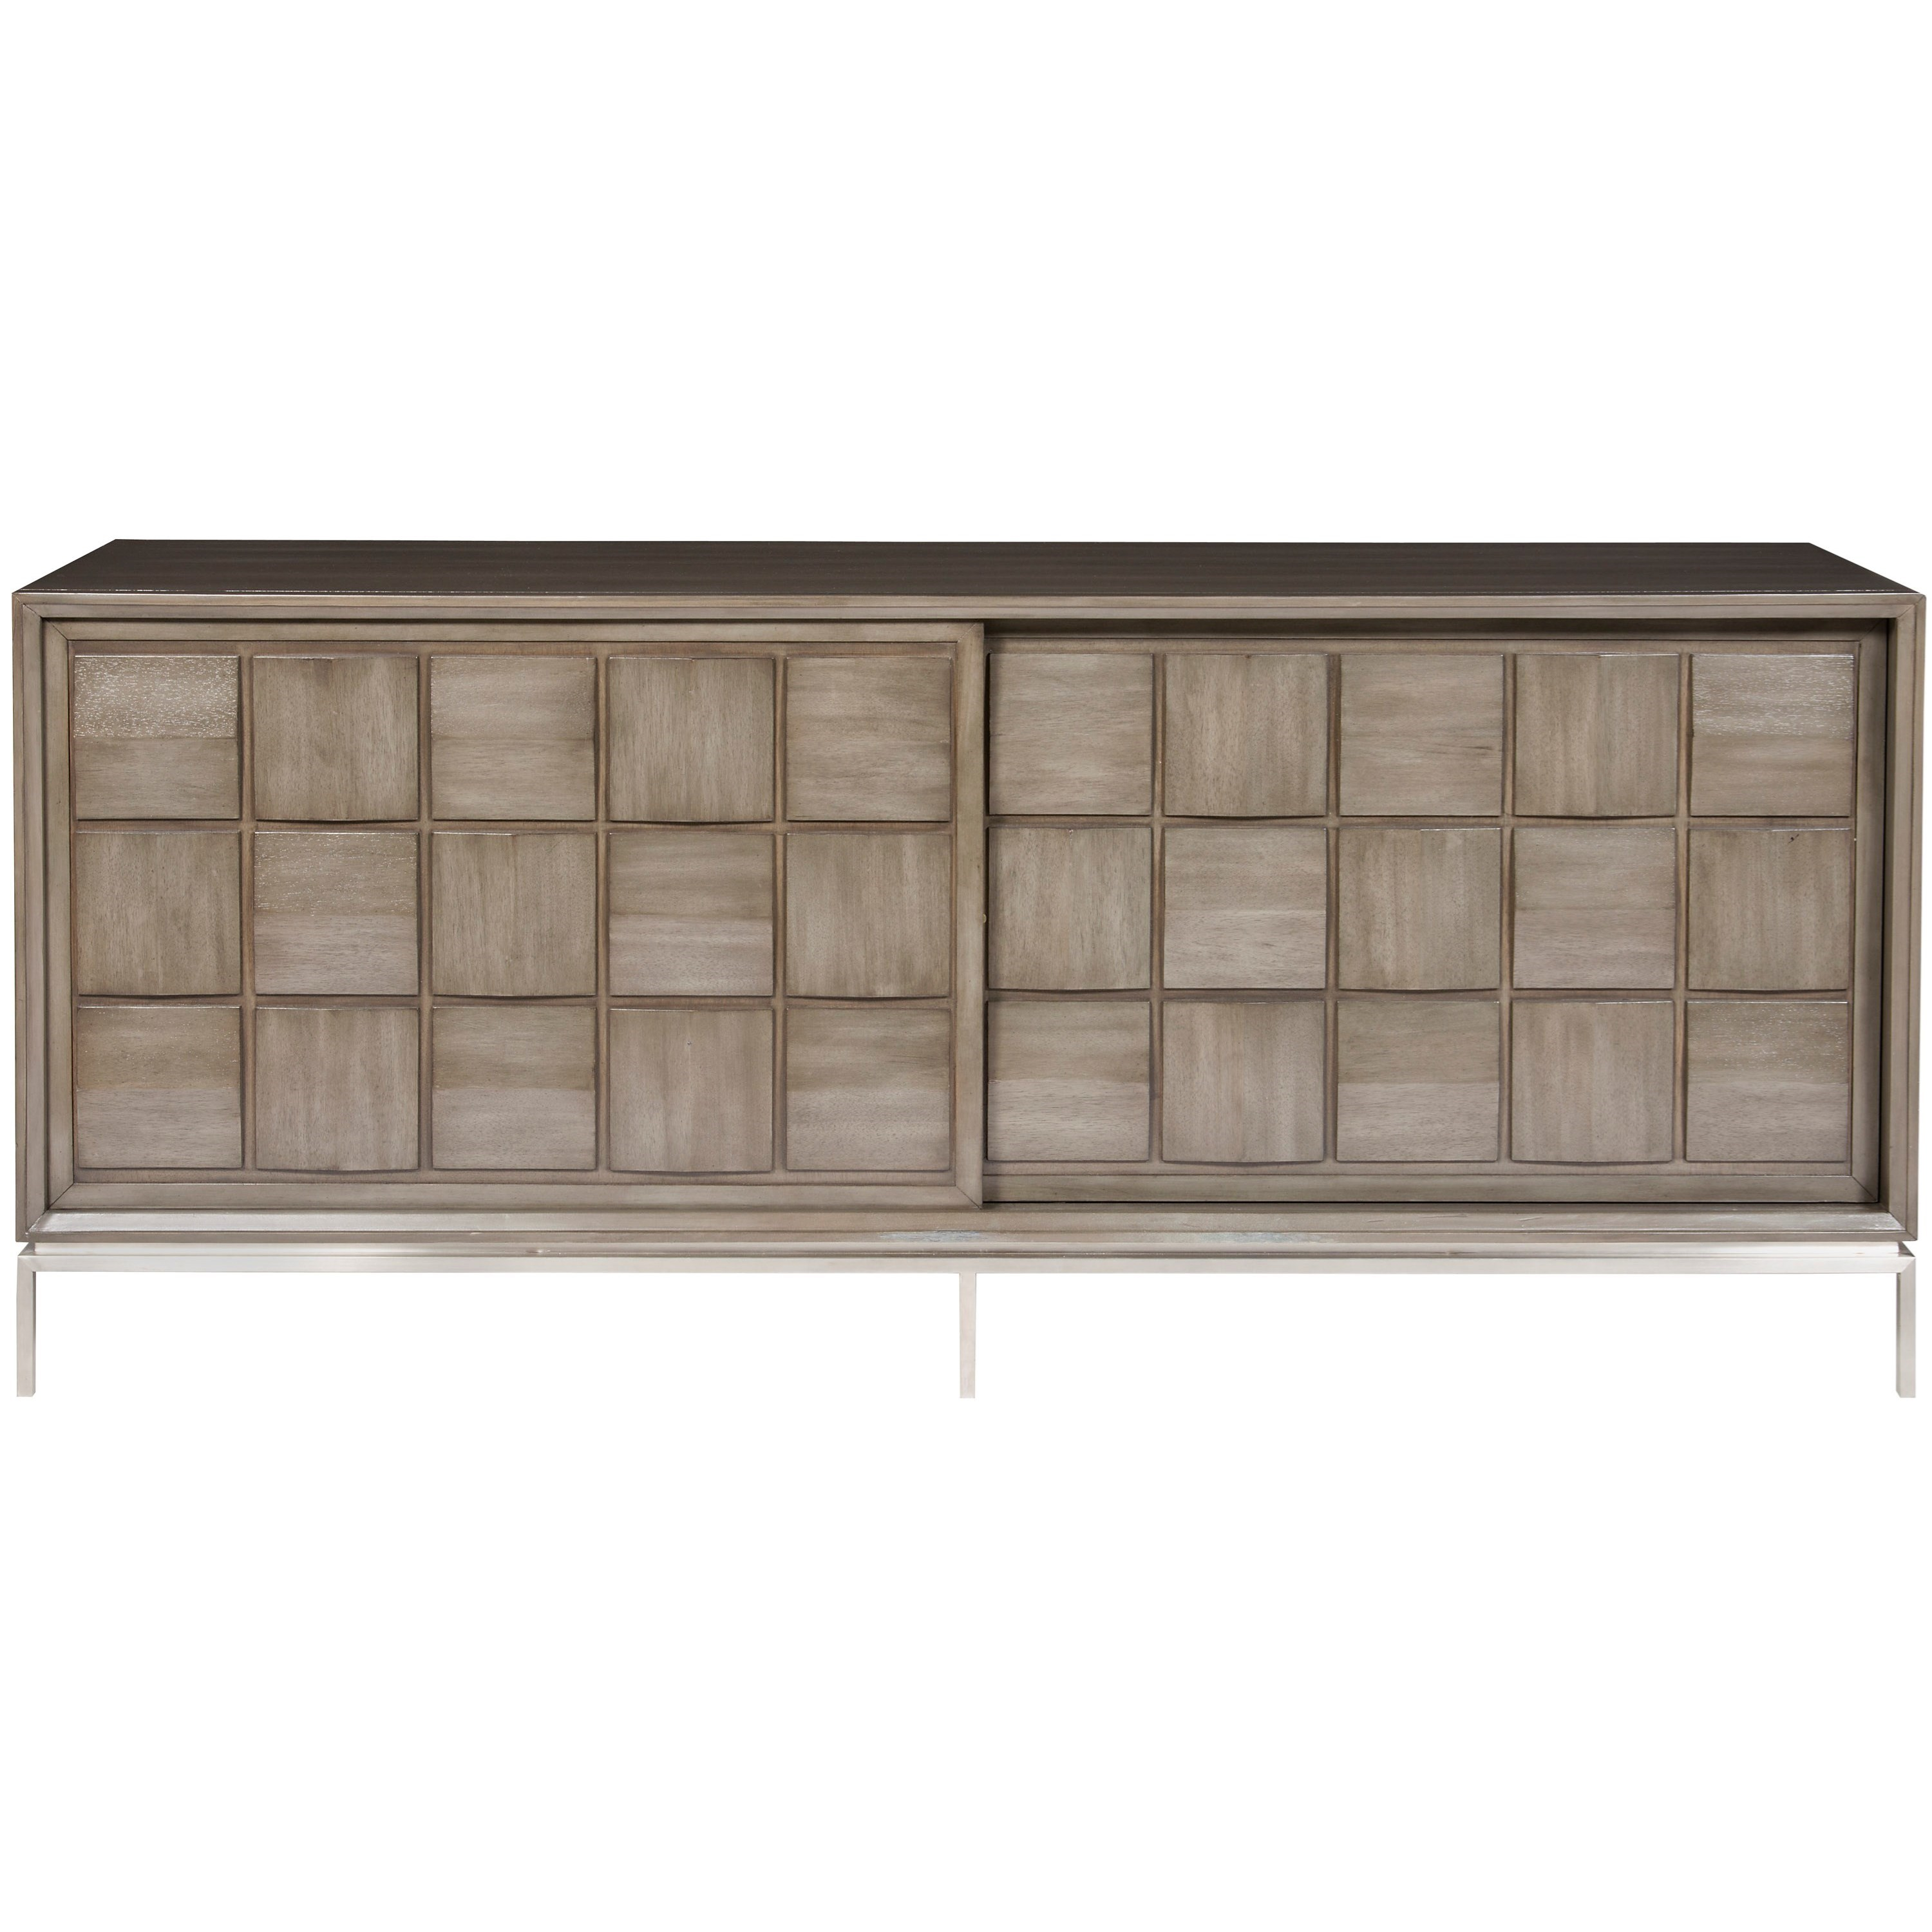 Michael Weiss Terrell Entertainment Console by Vanguard Furniture at Sprintz Furniture